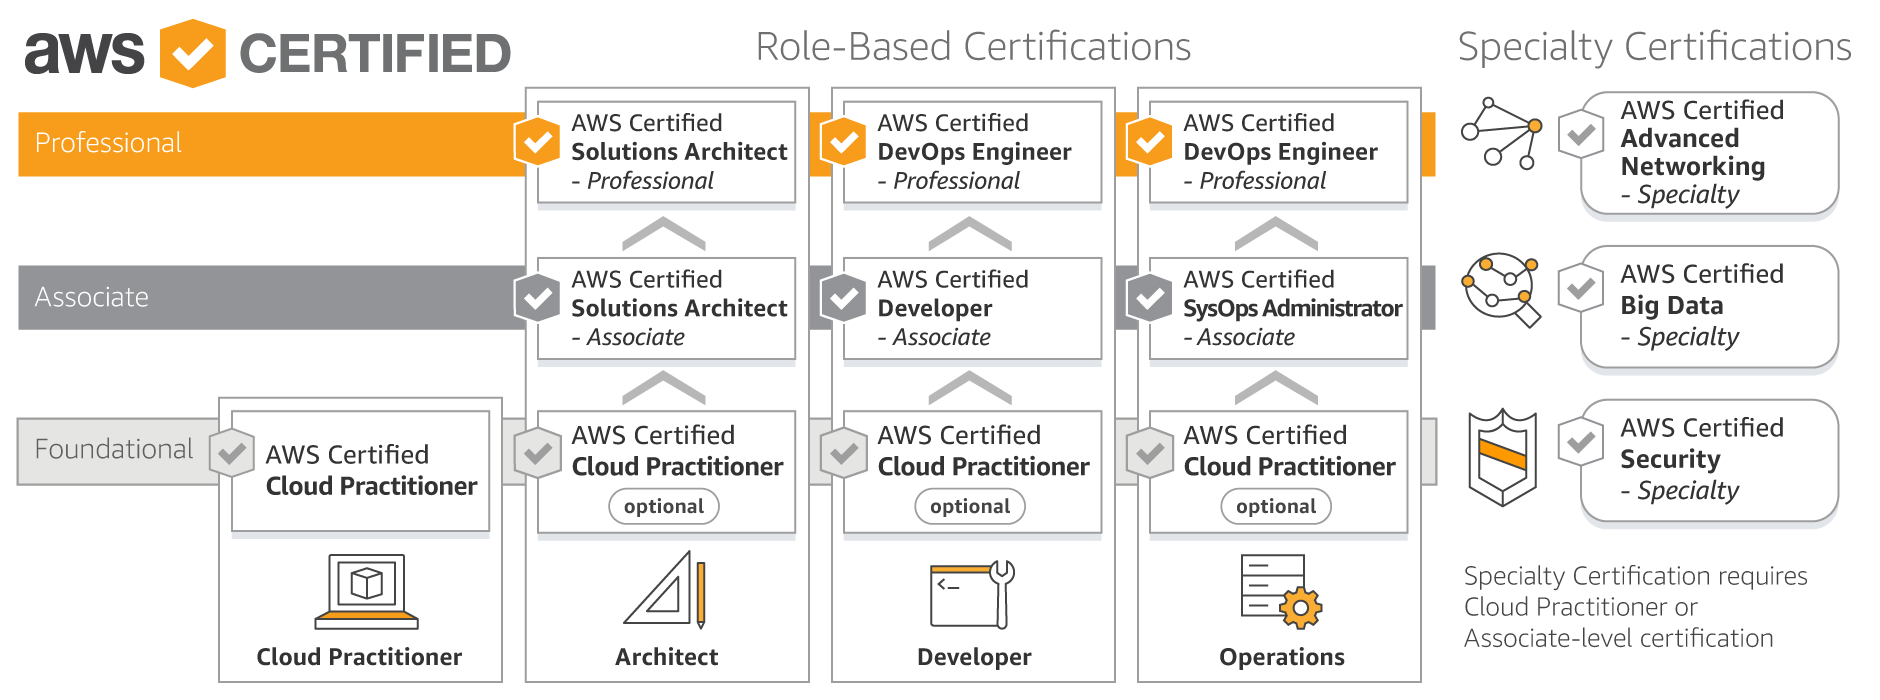 https://aws.amazon.com/ko/certification/